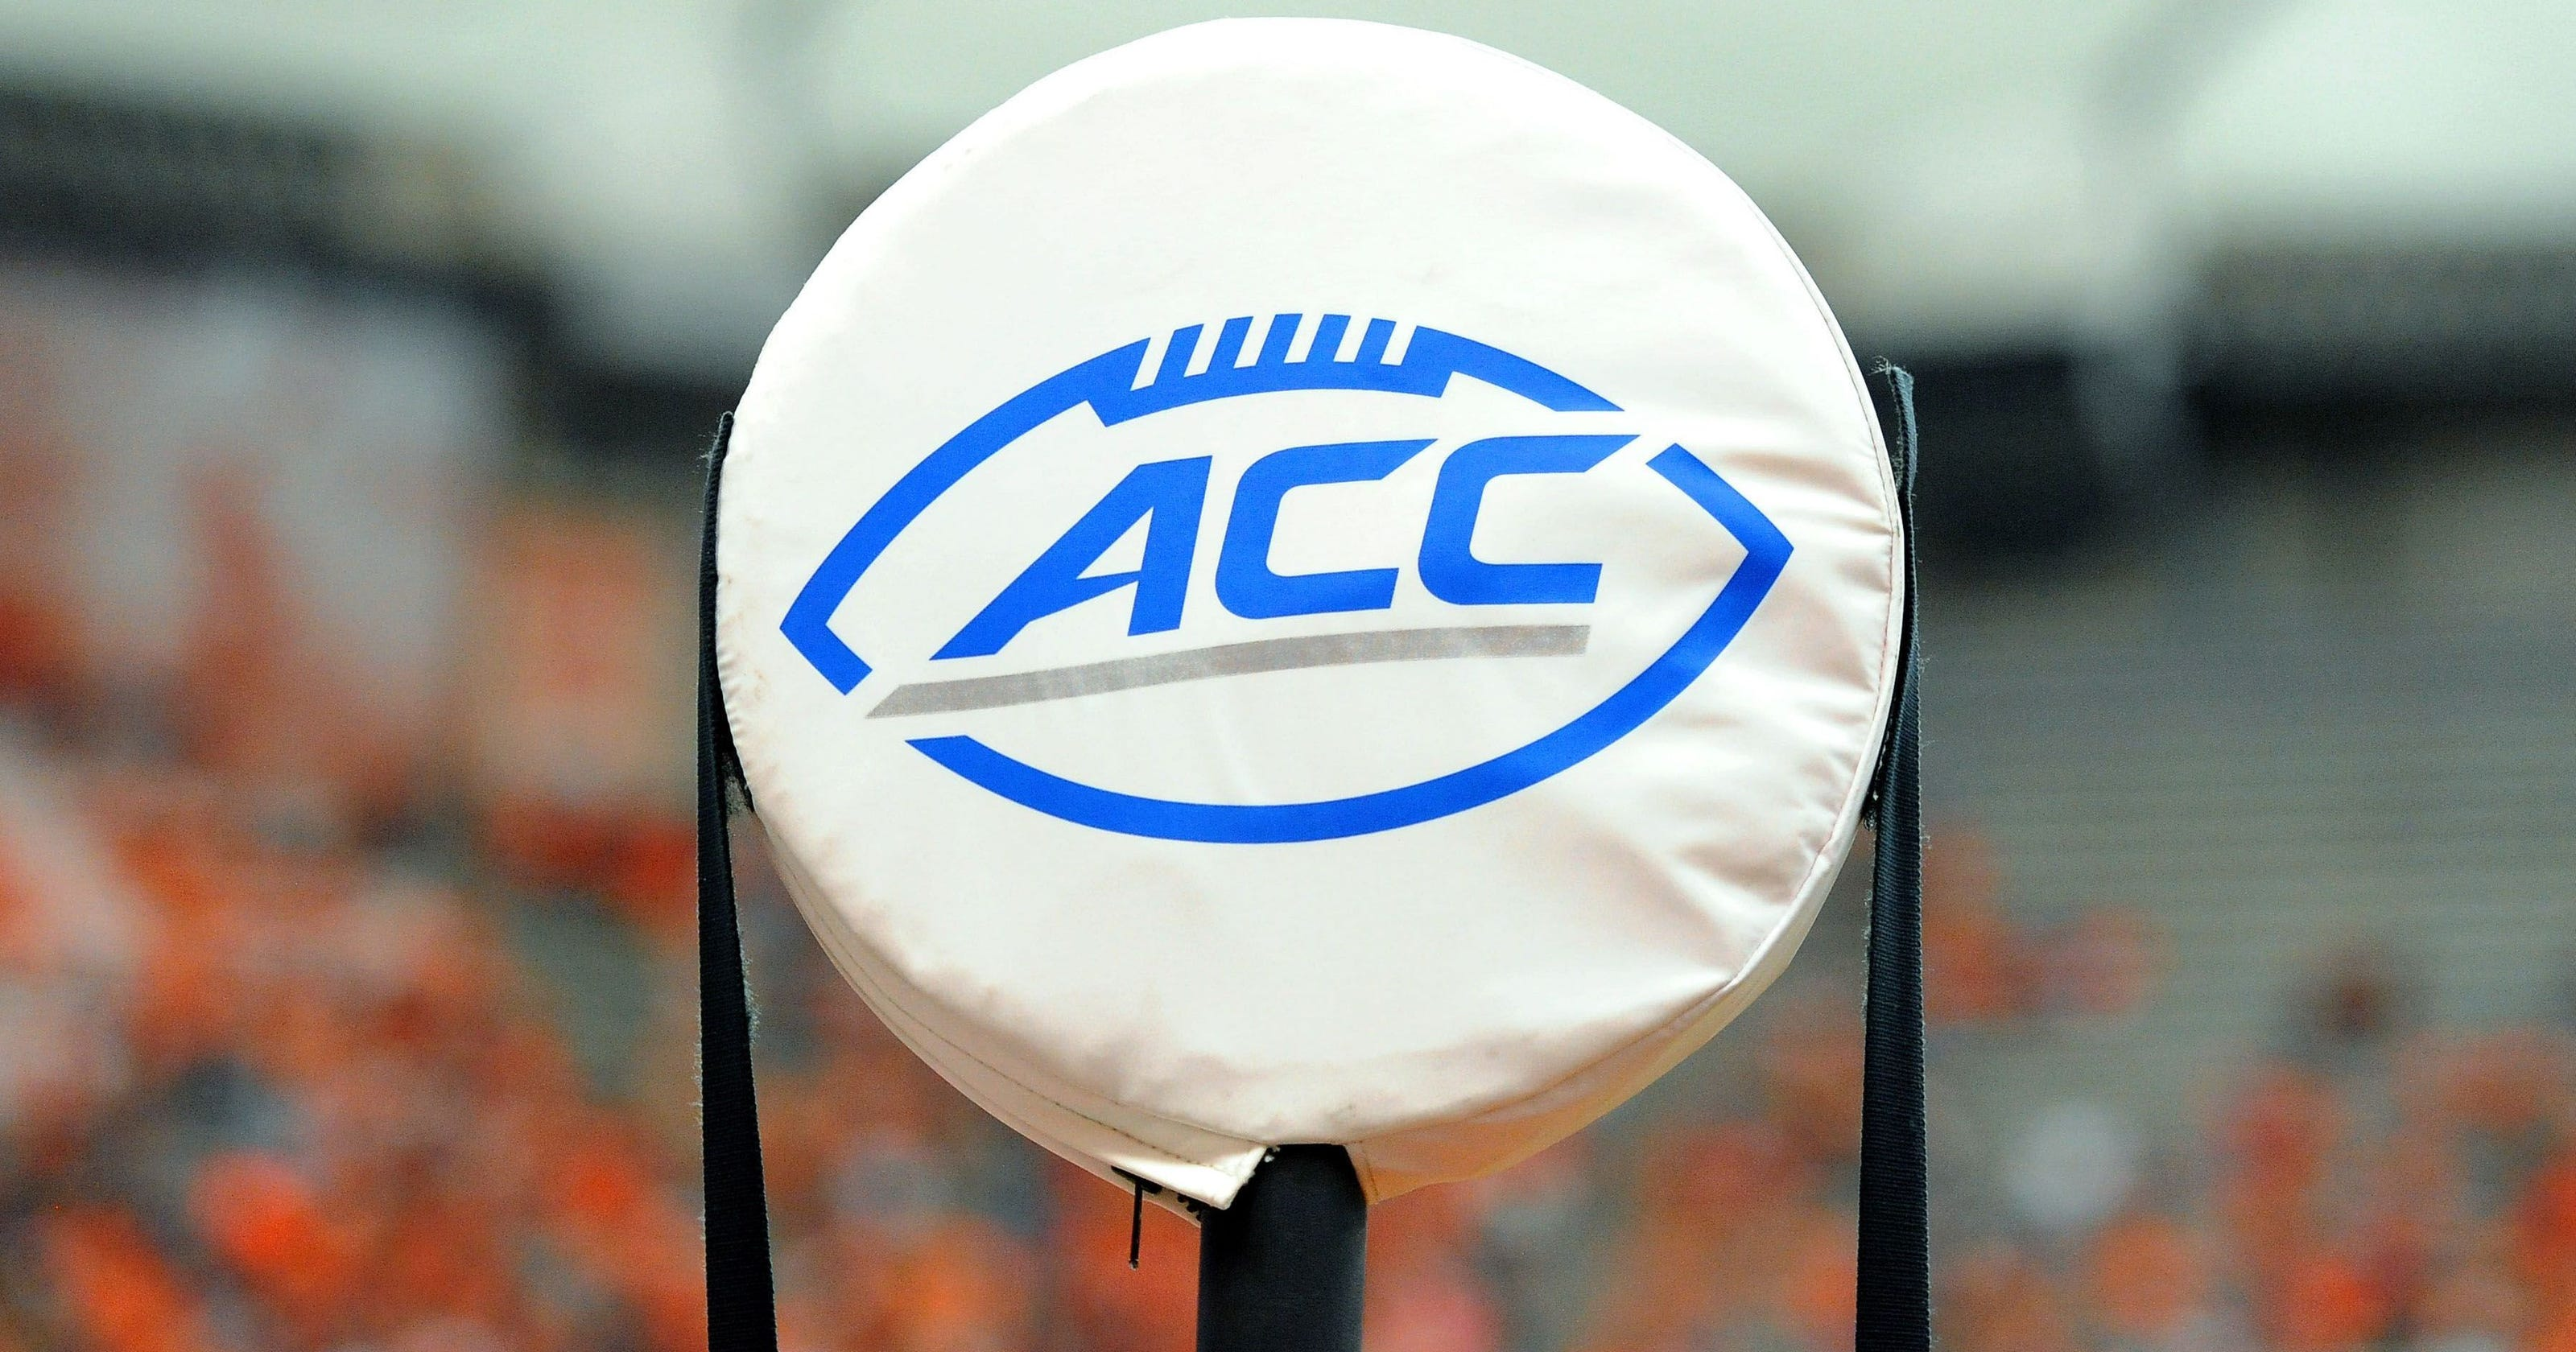 Virginia vs. Virginia Tech game on Sept. 19 postponed by ACC due to COVID-19 issues